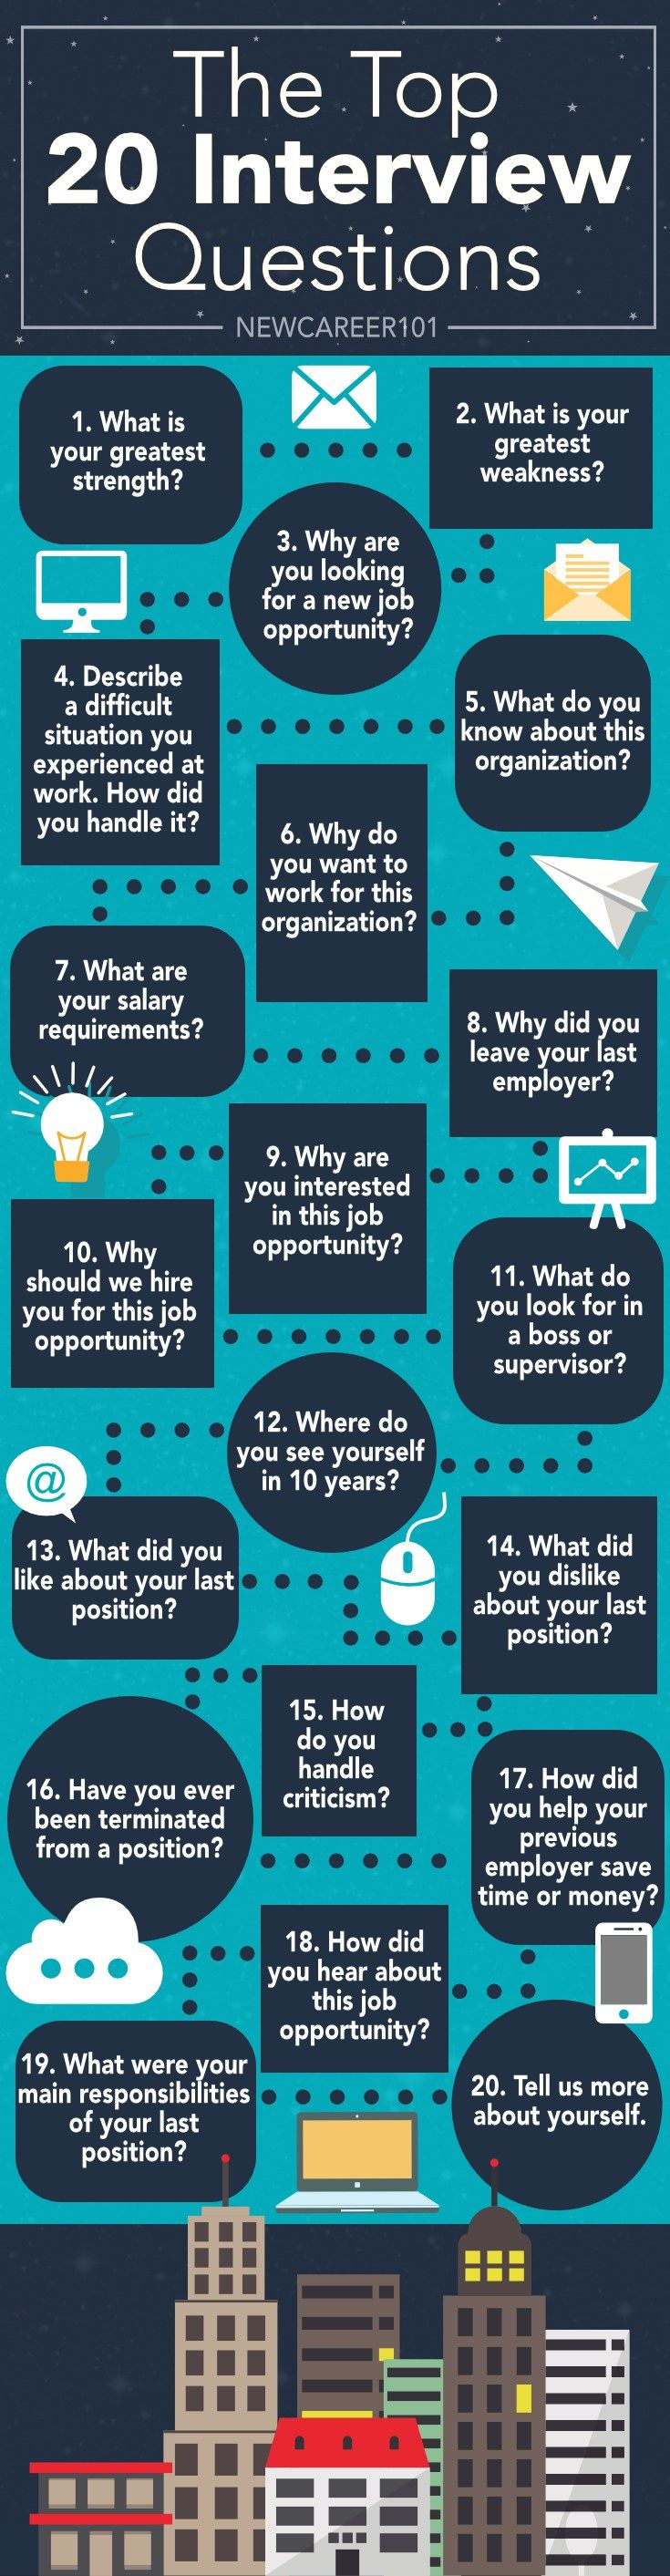 ◬ The Top 20 Interview Questions ◬ Tips to help you grow your career. <3 newcareer101